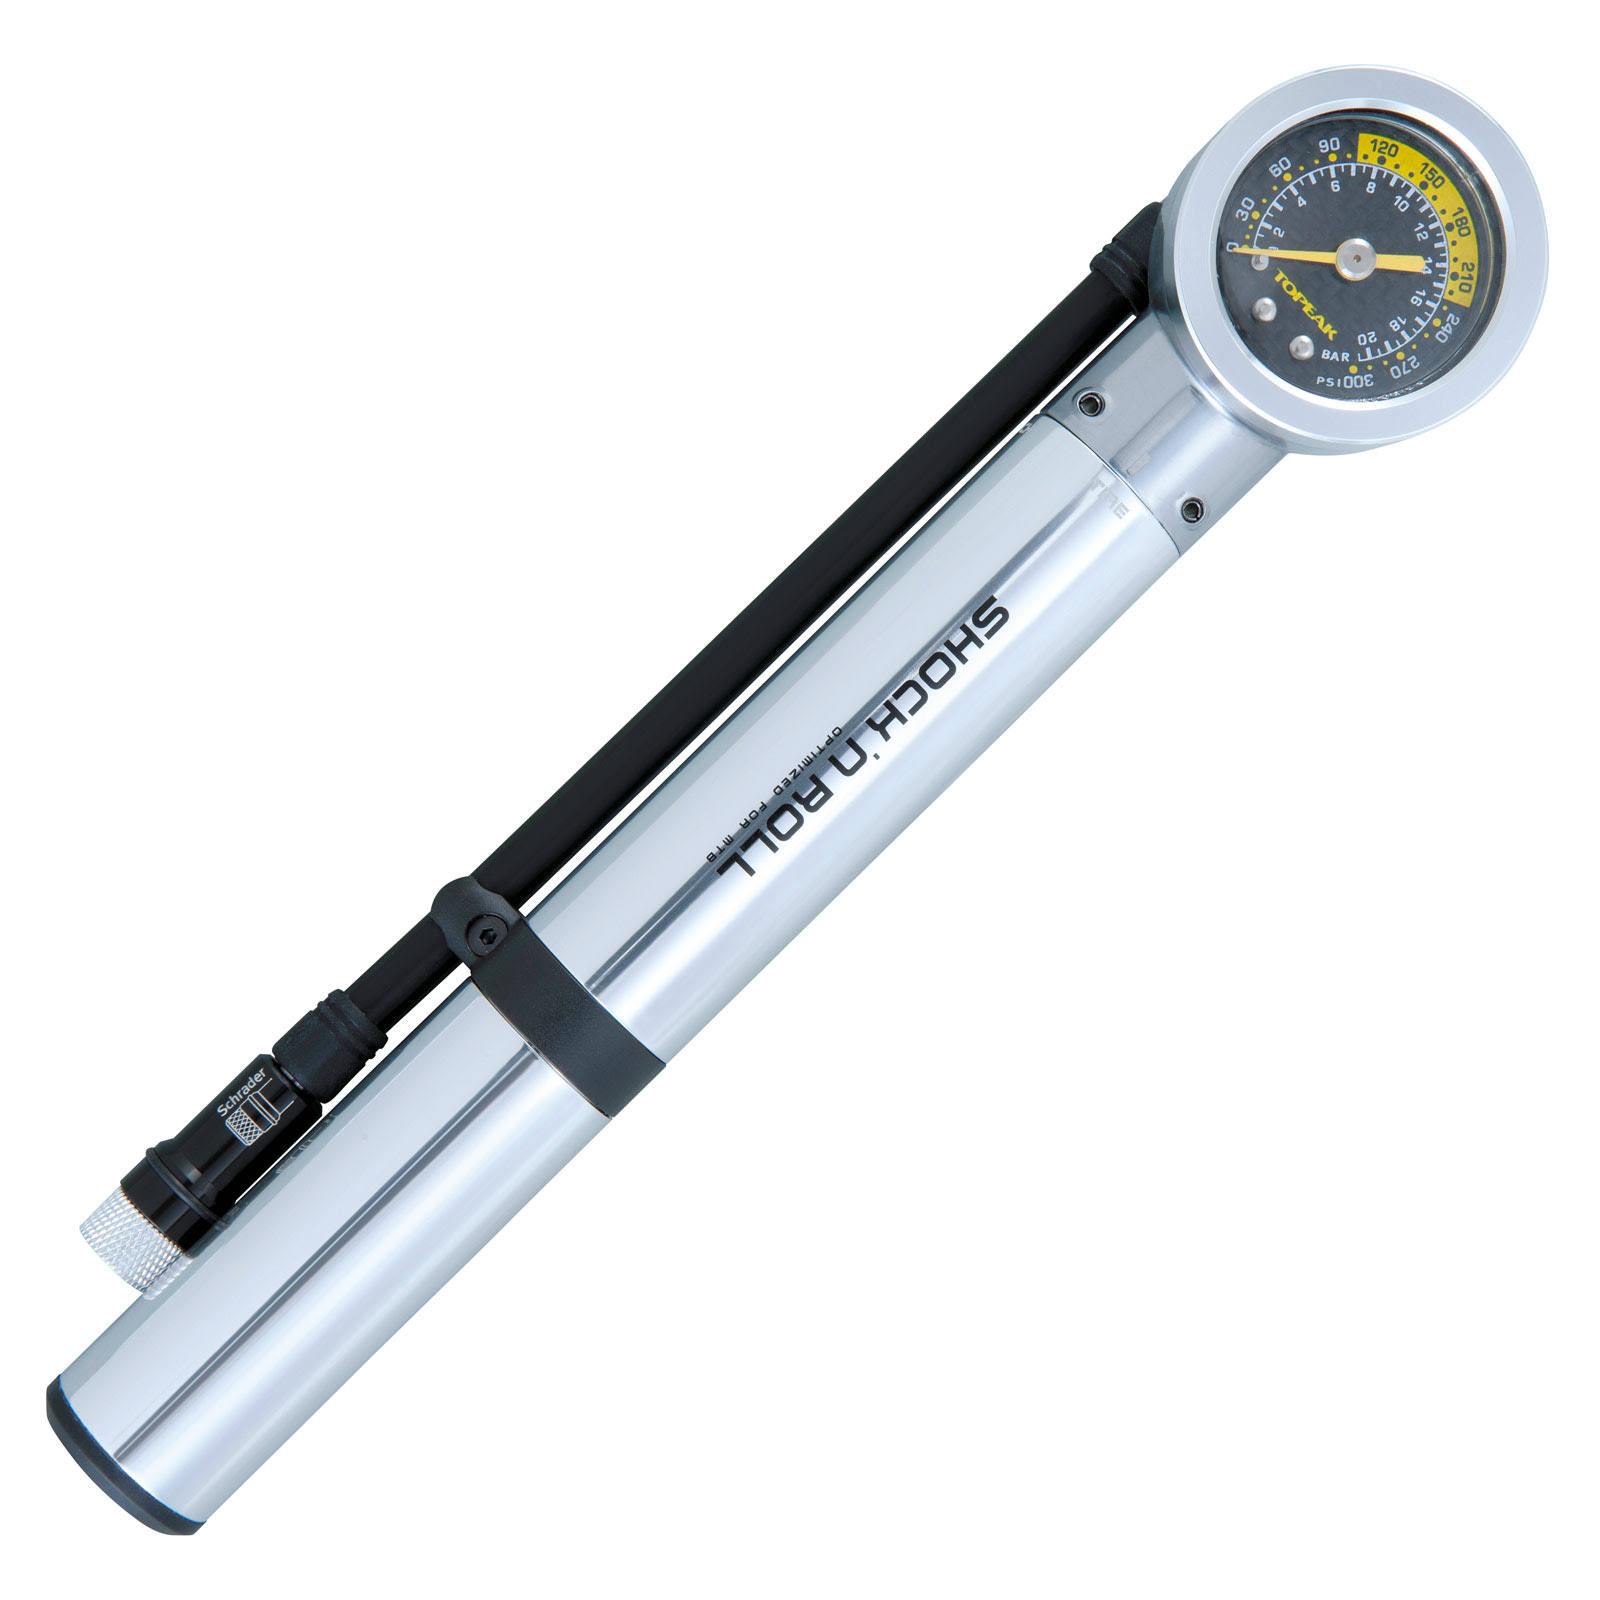 Topeak Shock N Roll Hand Shock Pump - with Gauge